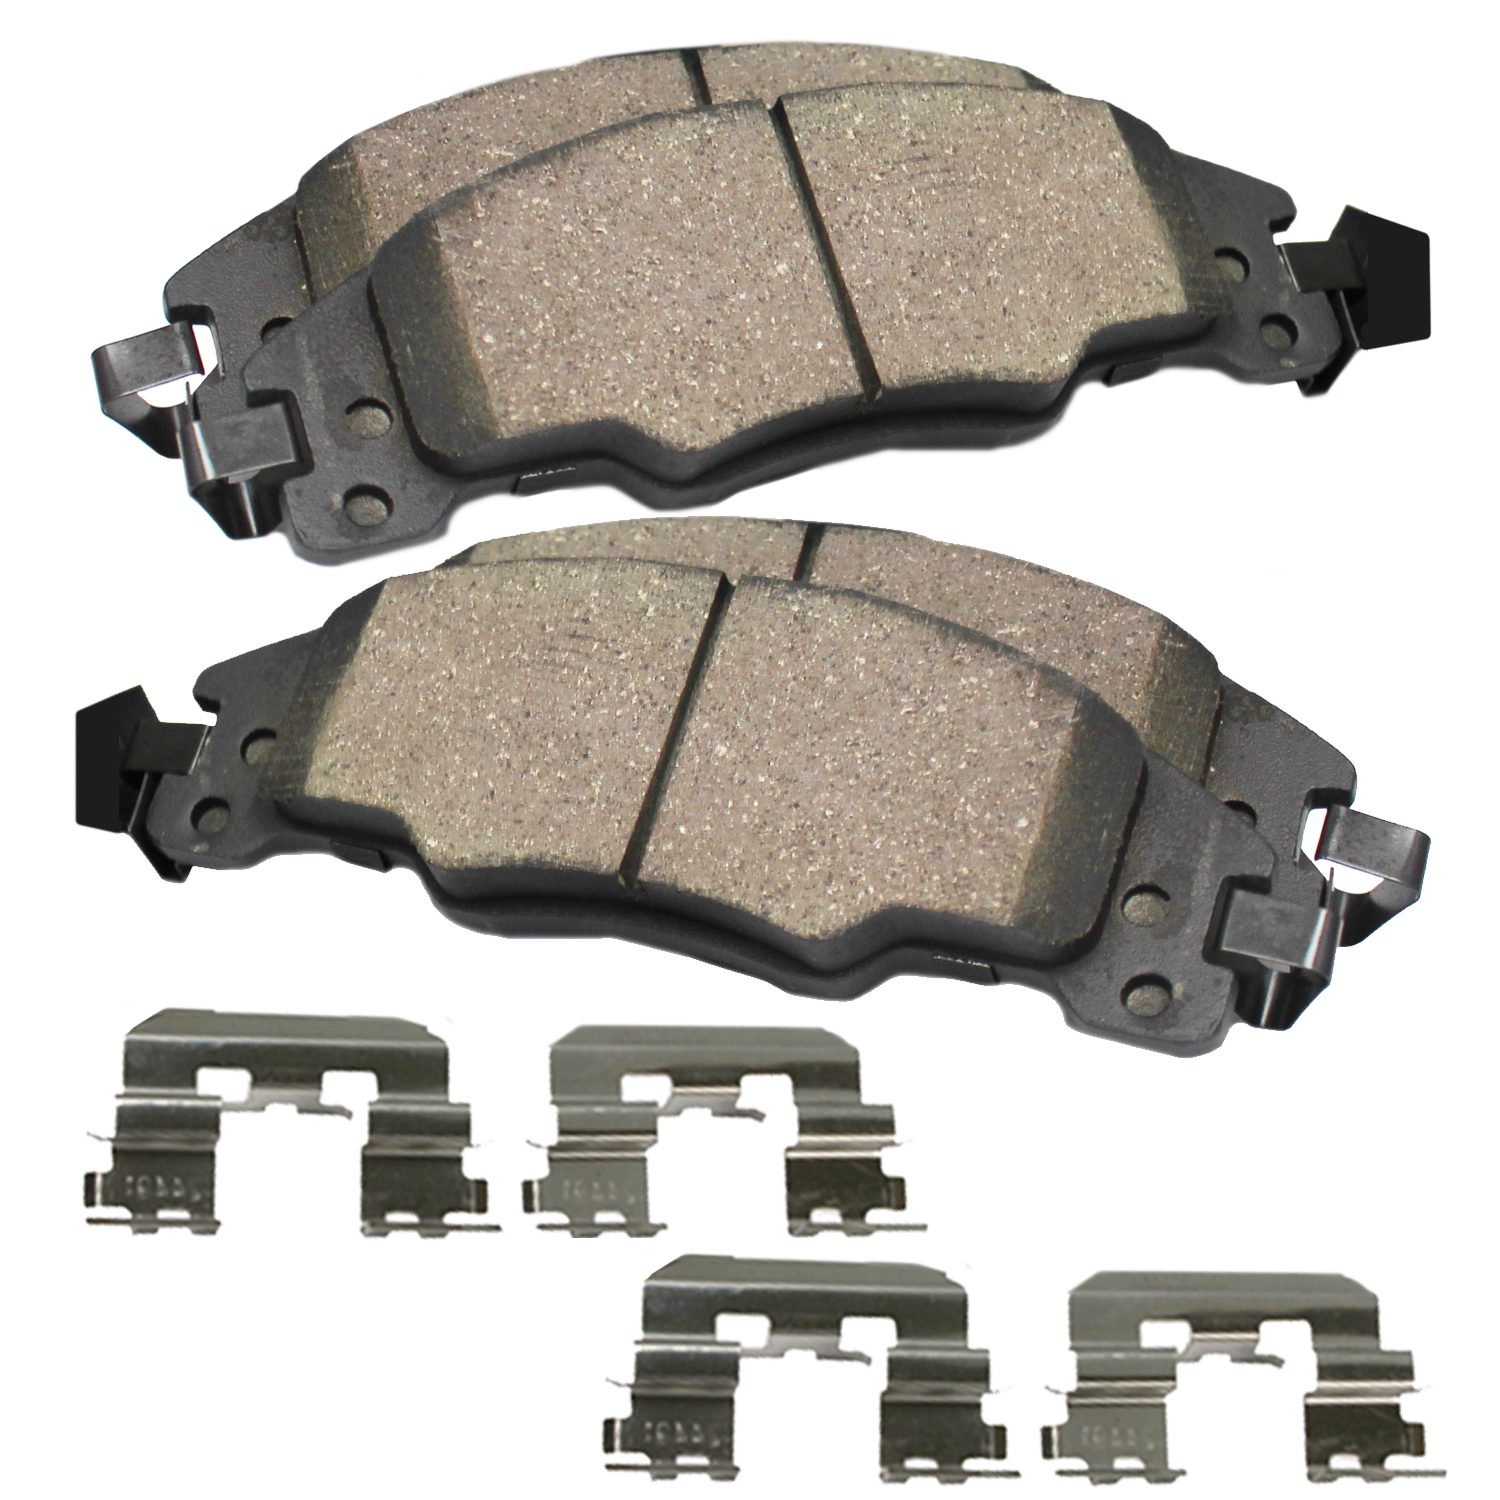 Rear Ceramic Brake Pads w/Hardware Kit for 2008-2015 Mitsubishi Lancer